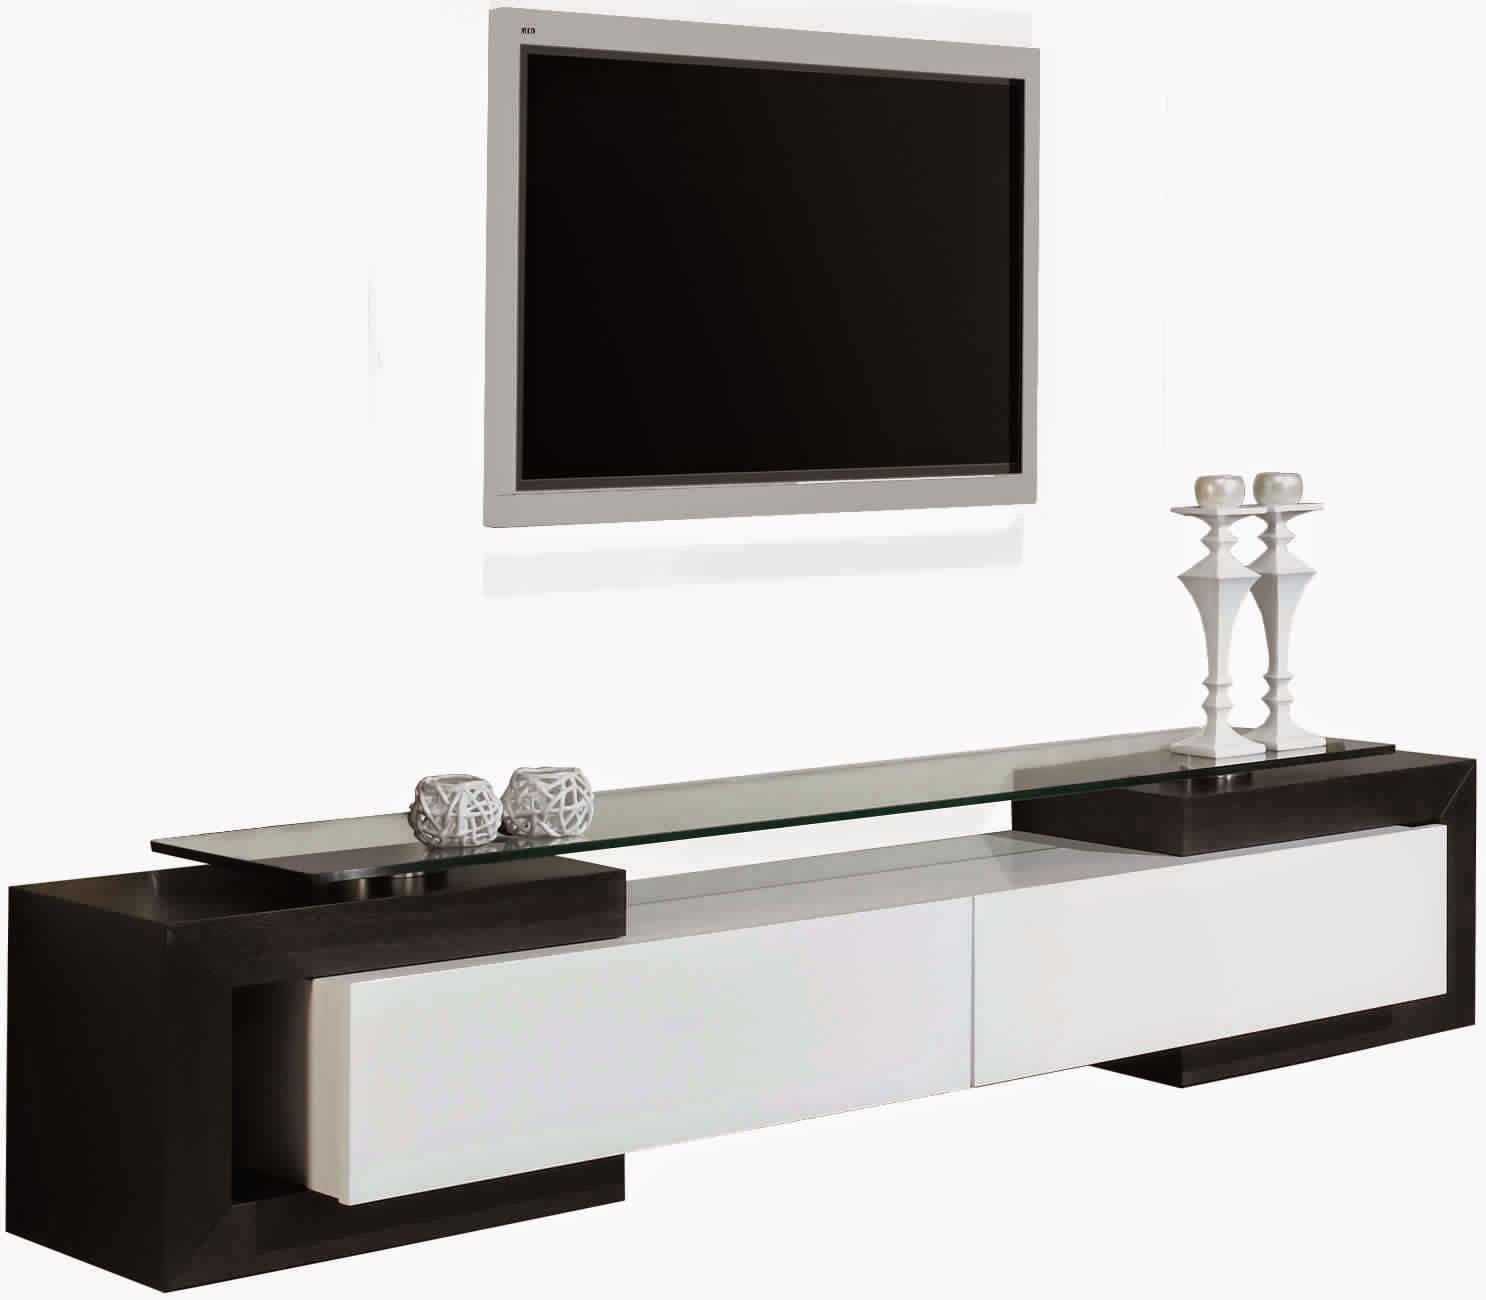 meuble tv laqu noir pas cher id es de d coration. Black Bedroom Furniture Sets. Home Design Ideas